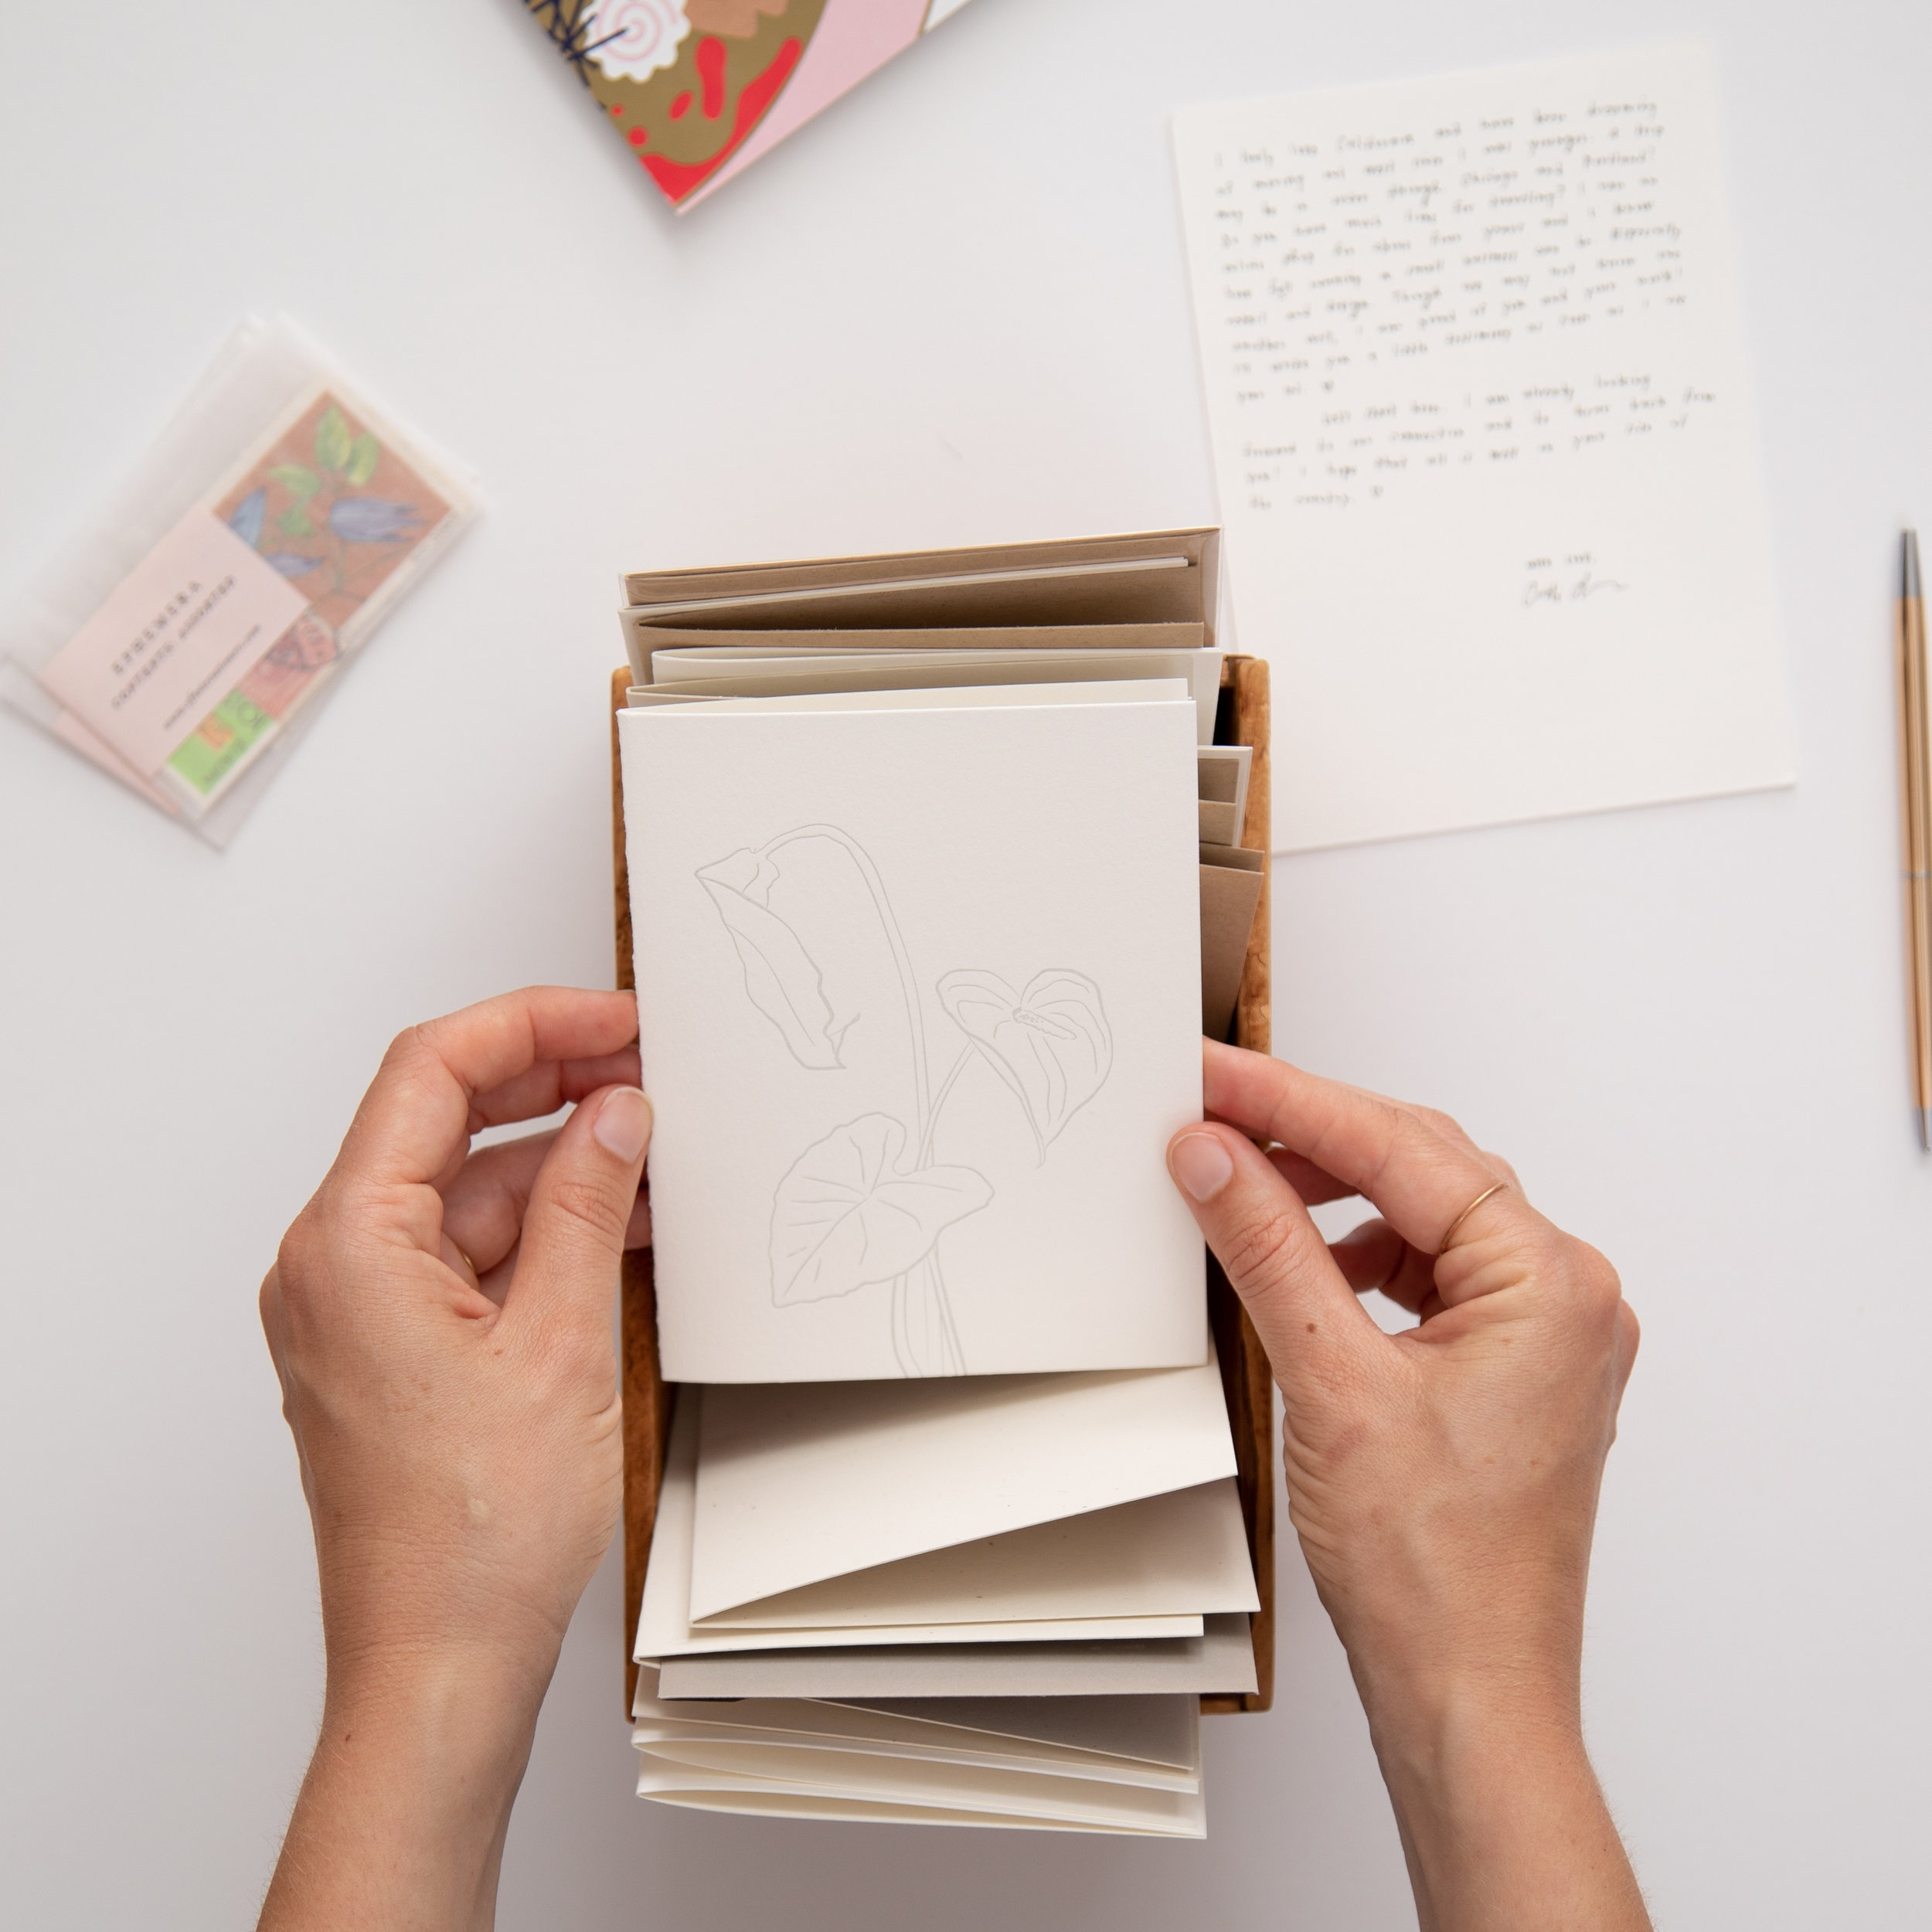 20 Day Card set | 40% off in honor of National Letter Writing Month | Of Note Stationers